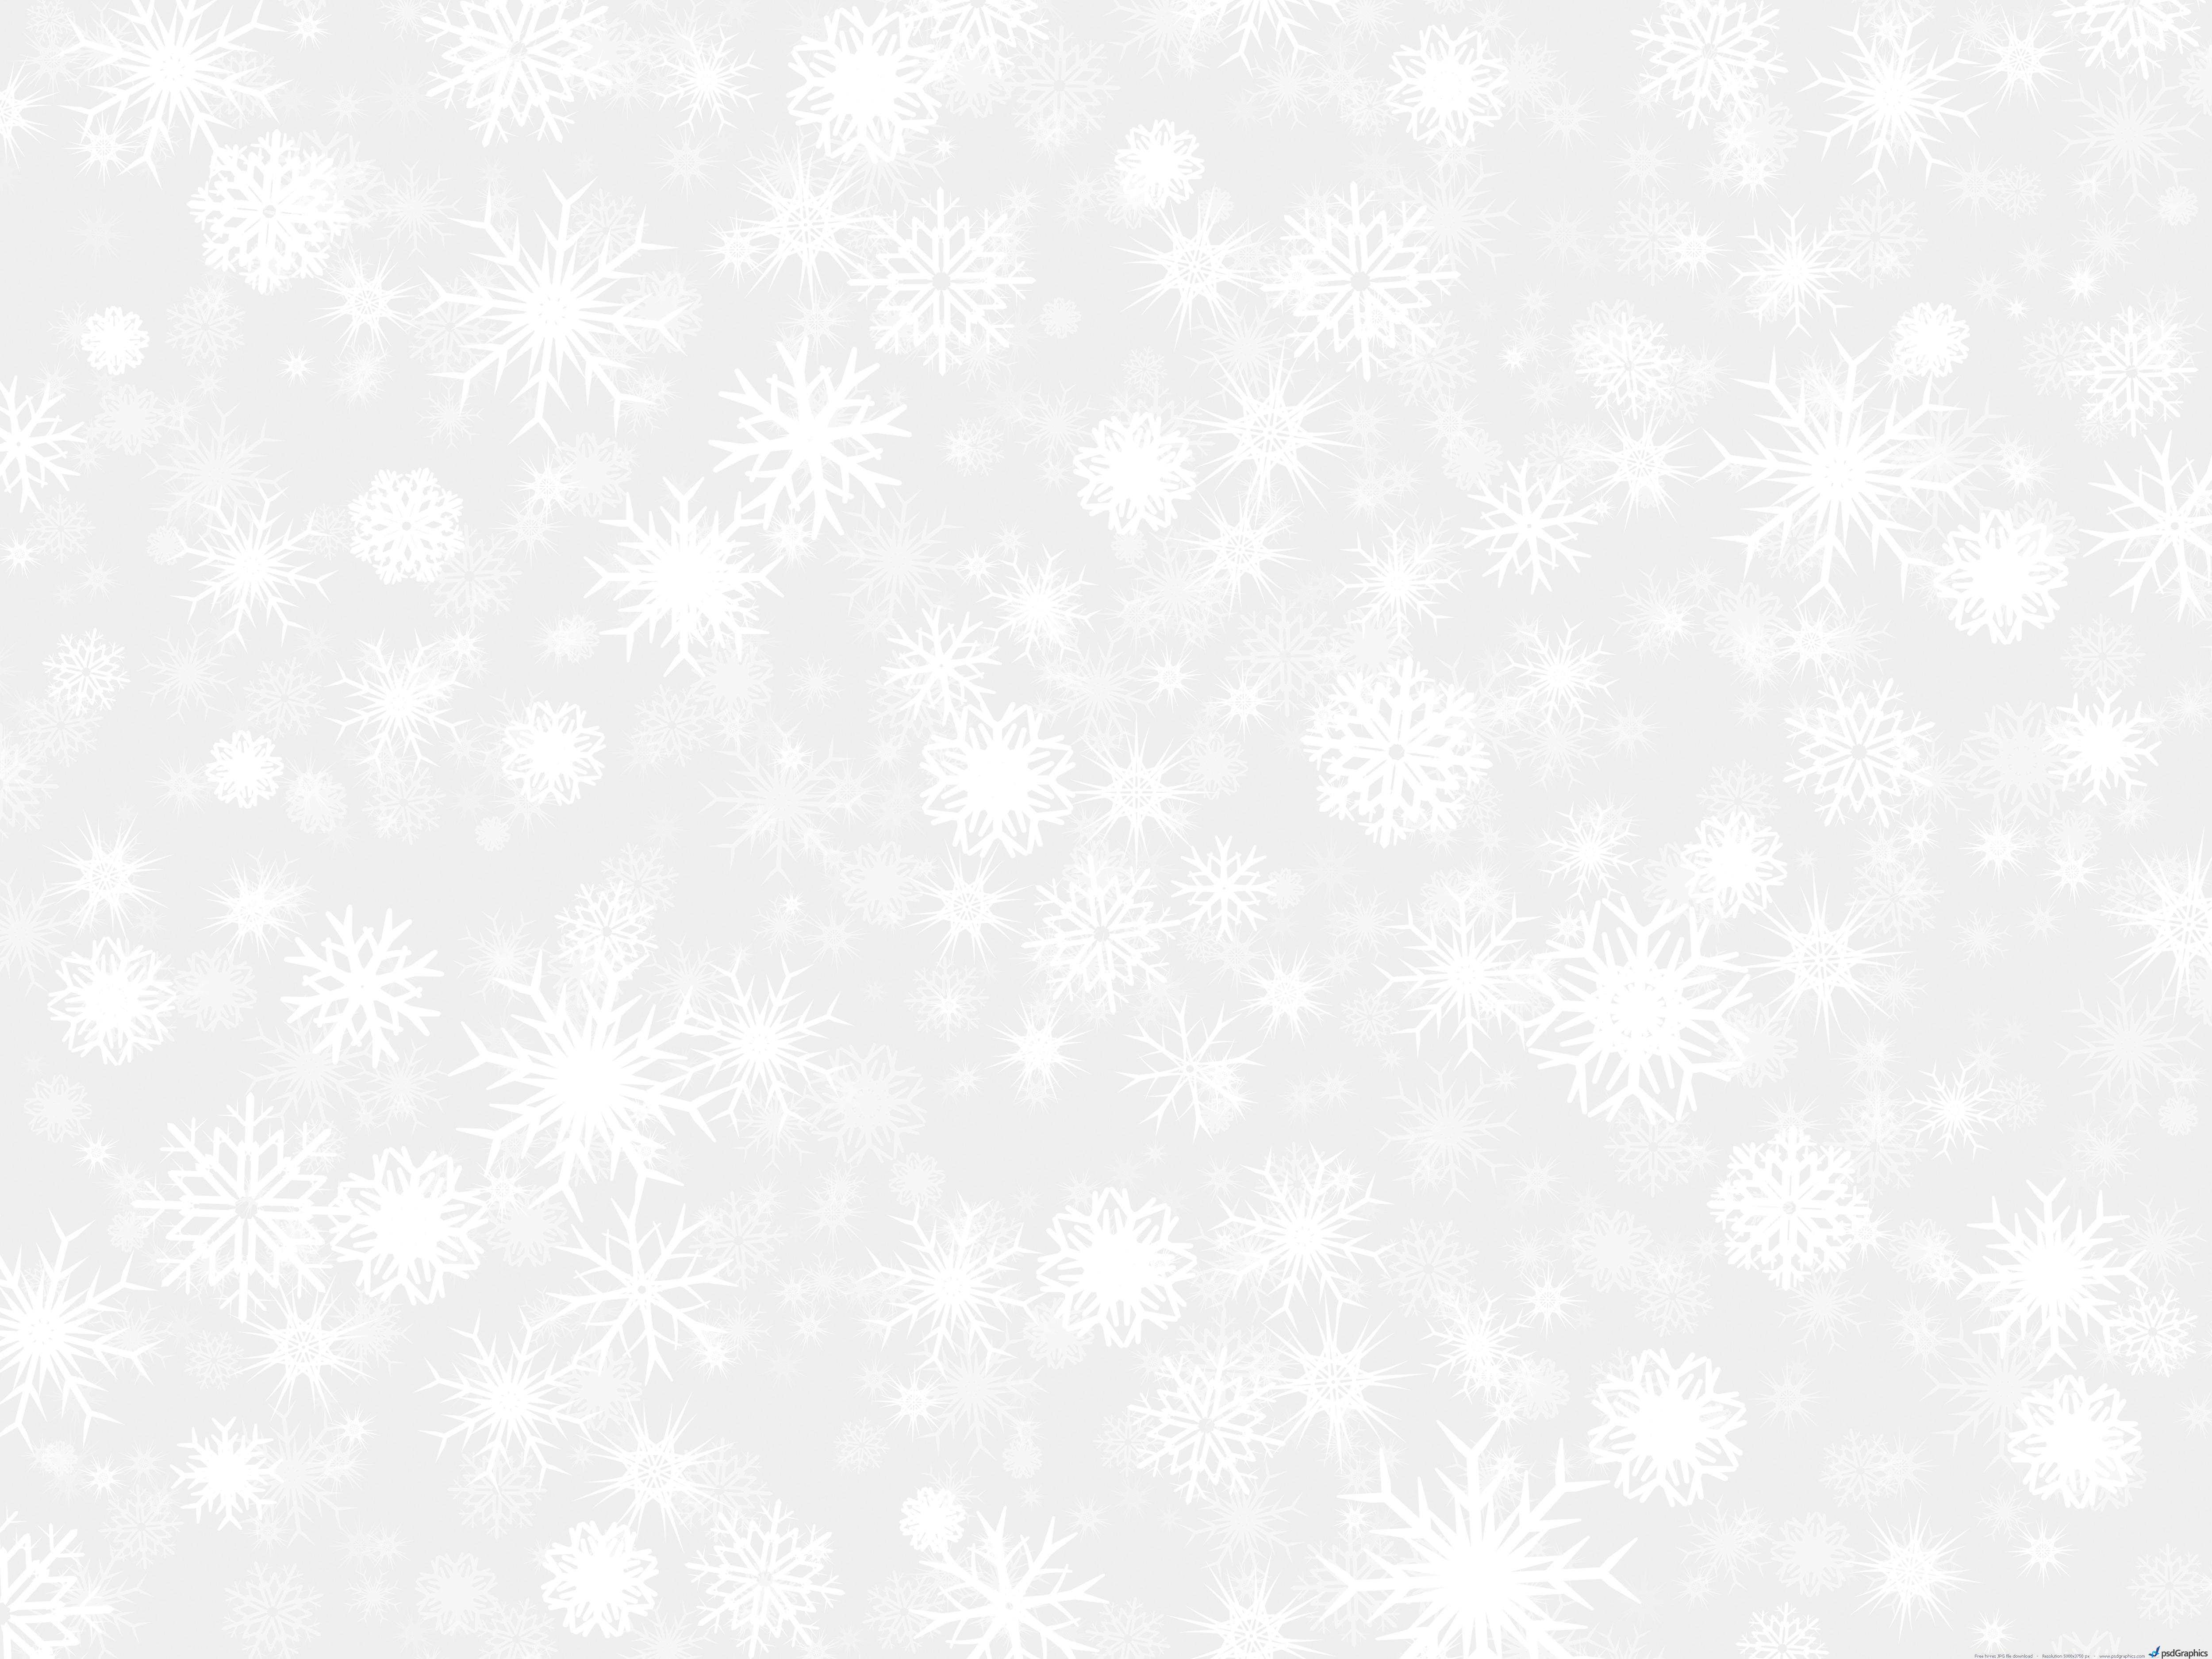 White Snow Background   Psdgraphics